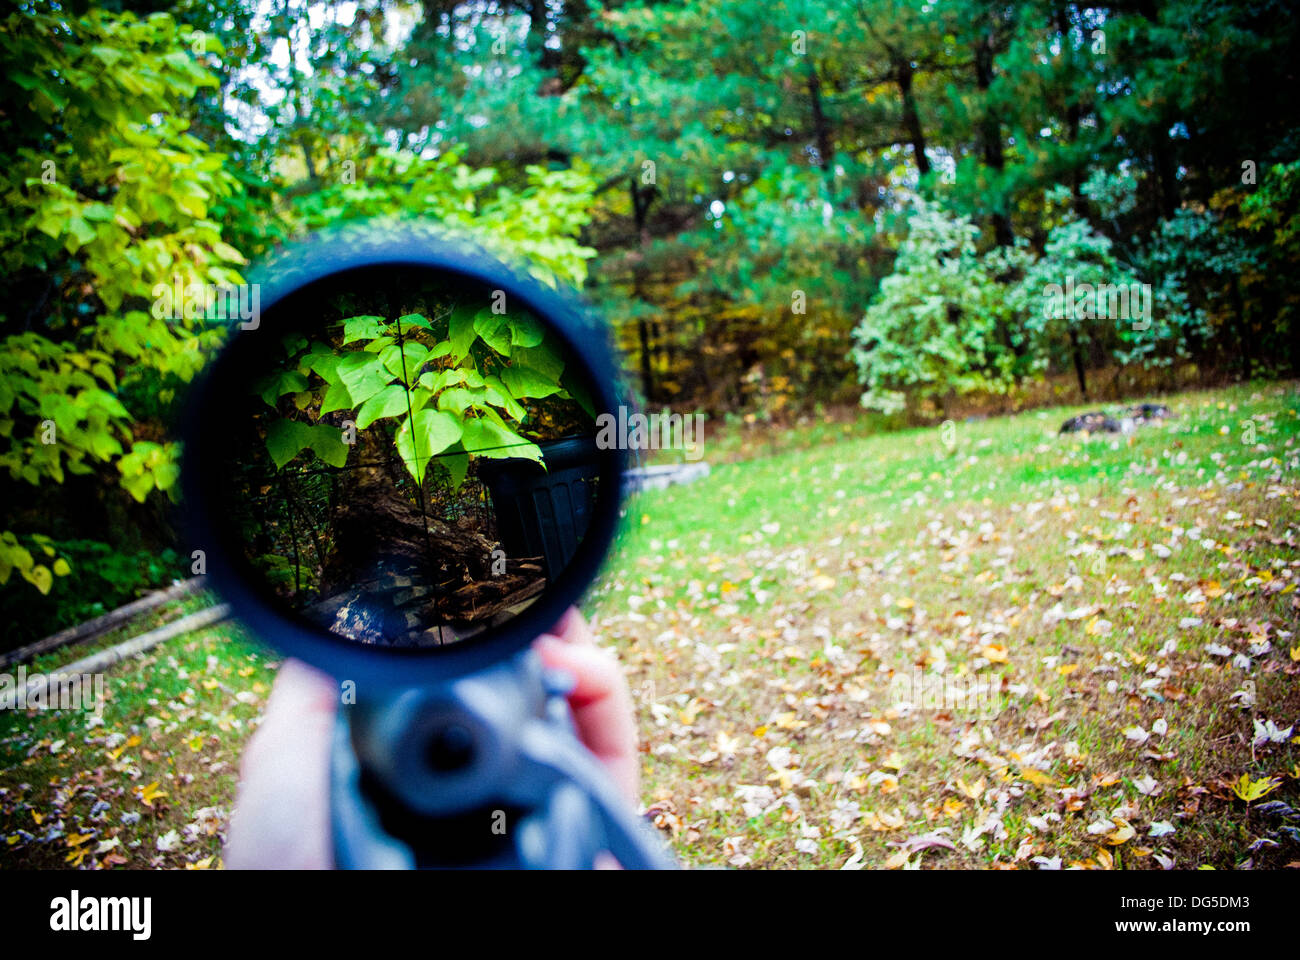 Looking through the sniper's scope into the woods. - Stock Image